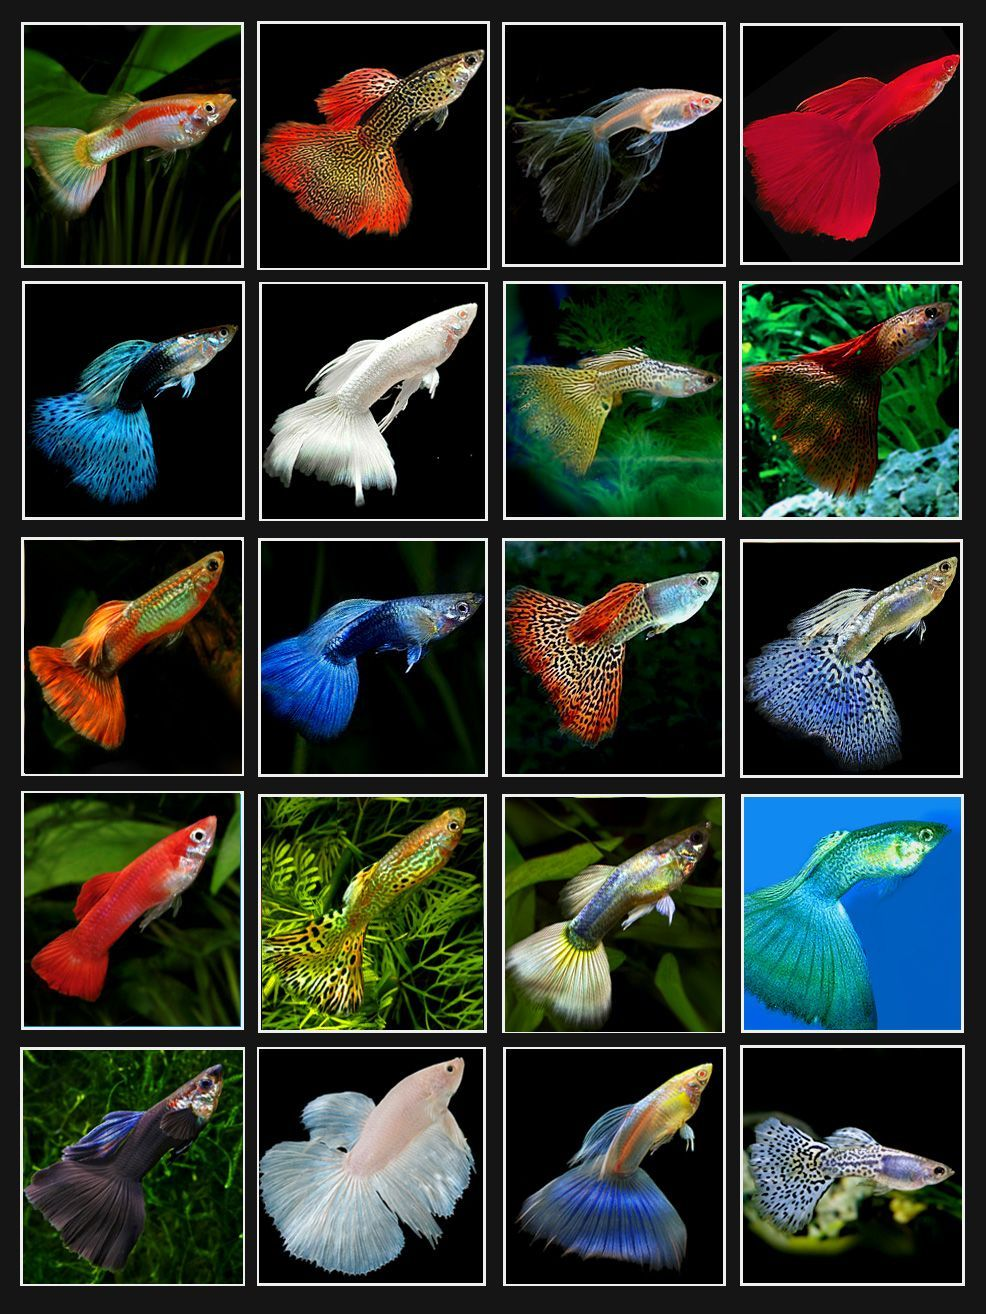 These Are The Most Common Types Of Betta Fish Plakat Betta Closely Related To The Traditional Fighti Aquarium Fish Tropical Fish Aquarium Tropical Fish Tanks